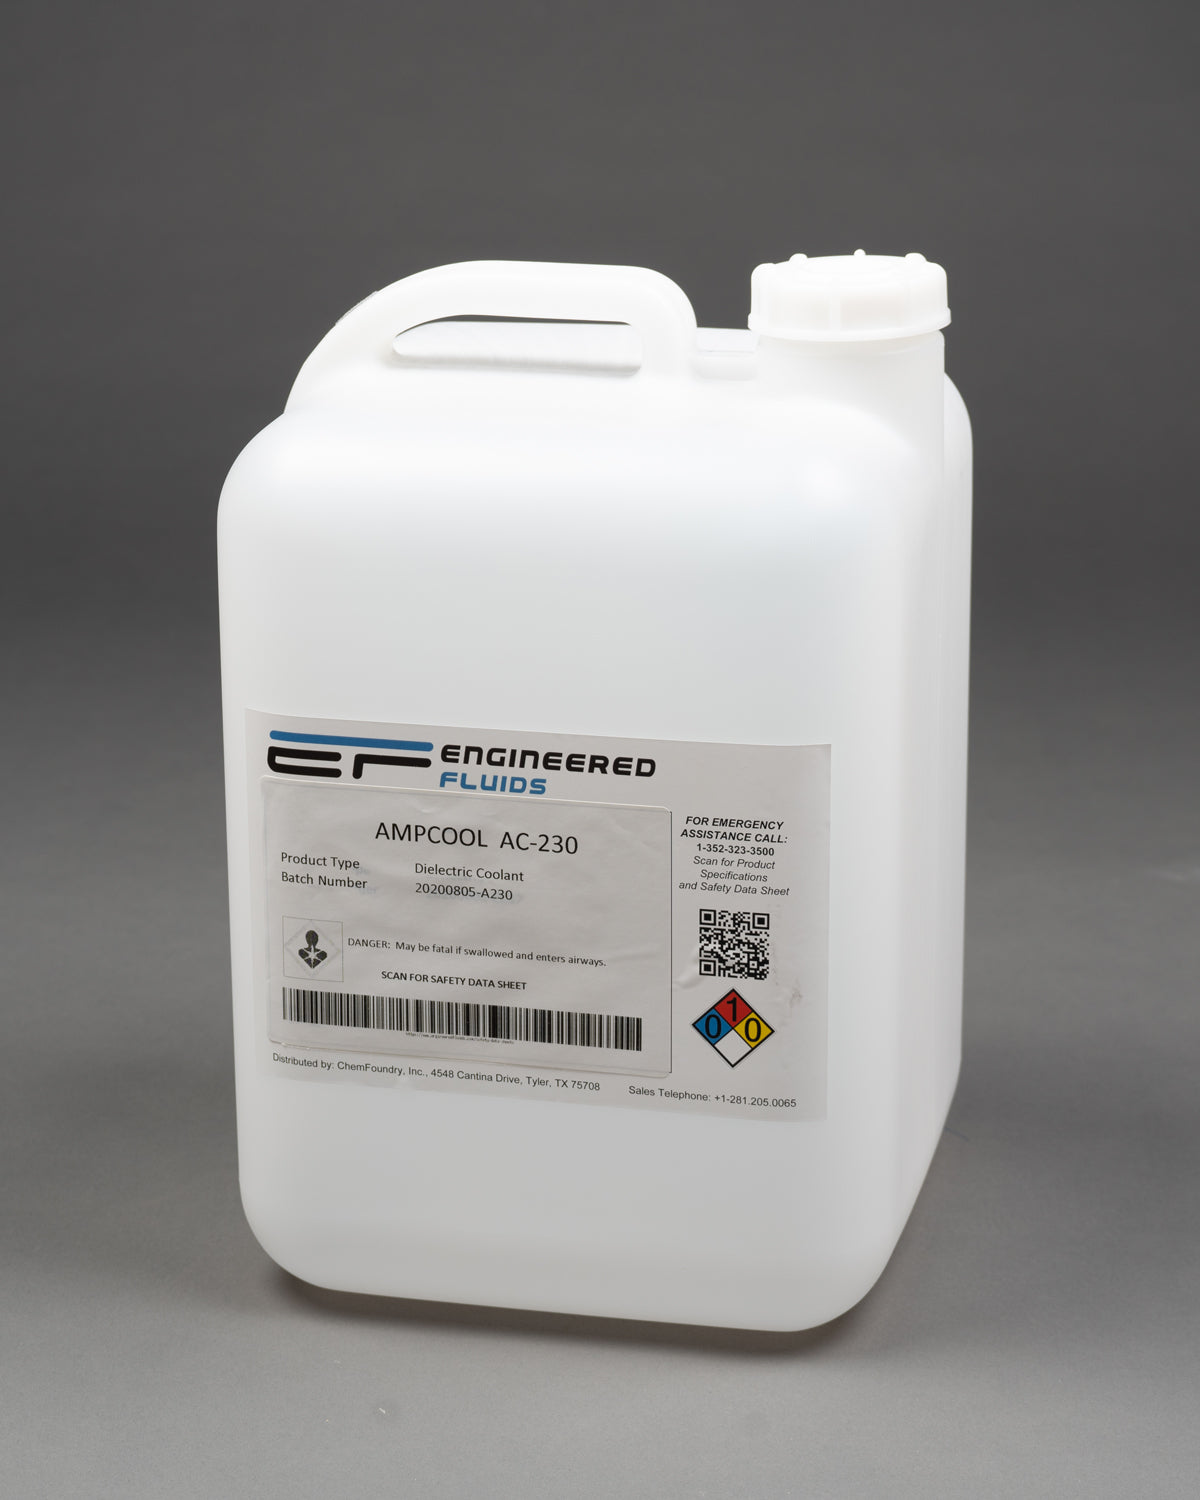 AmpCool® AC-230 Dielectric Coolant & Lubricant Questions & Answers